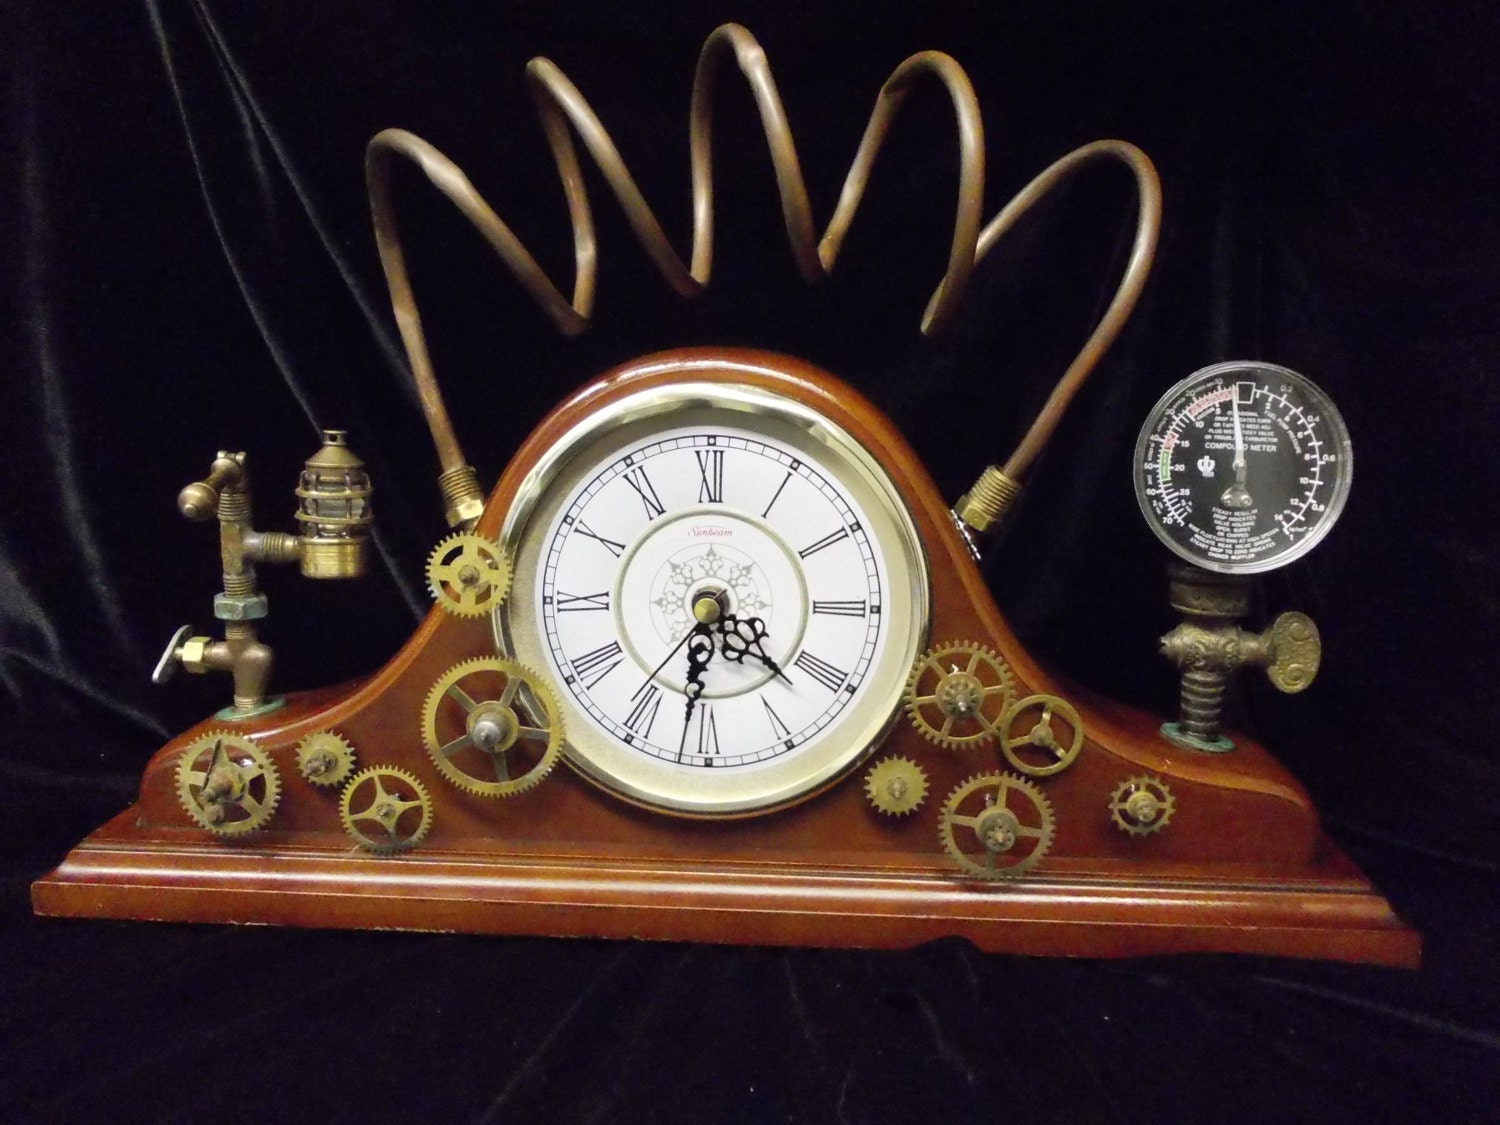 The power of steam steampunk upcycled mantel clock with - Steampunk mantle clock ...